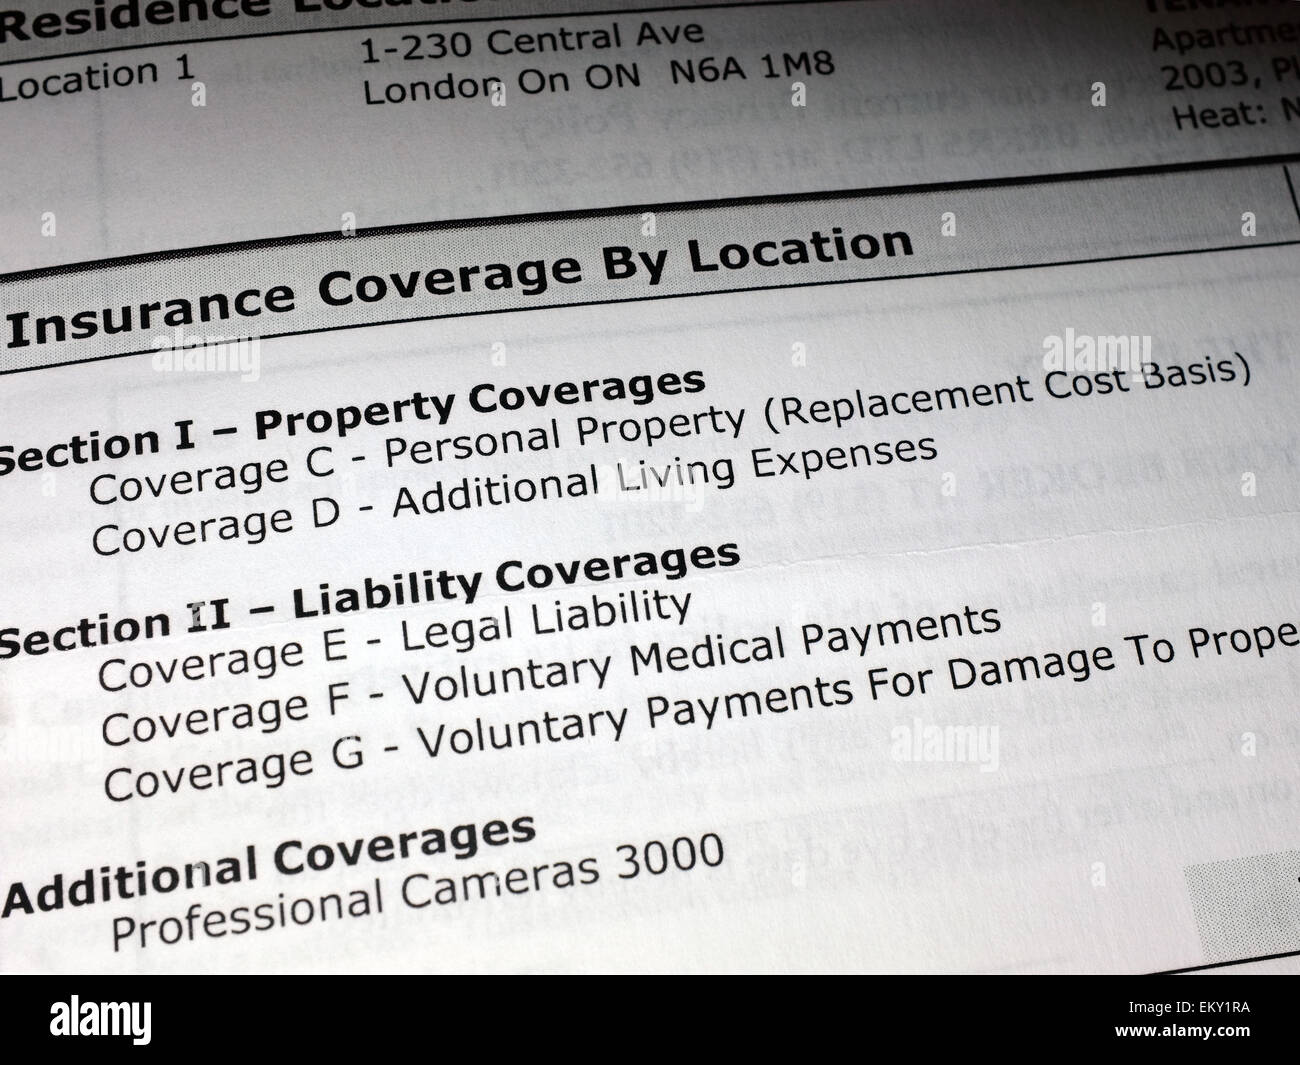 The details on an insurance policy paperwork. - Stock Image